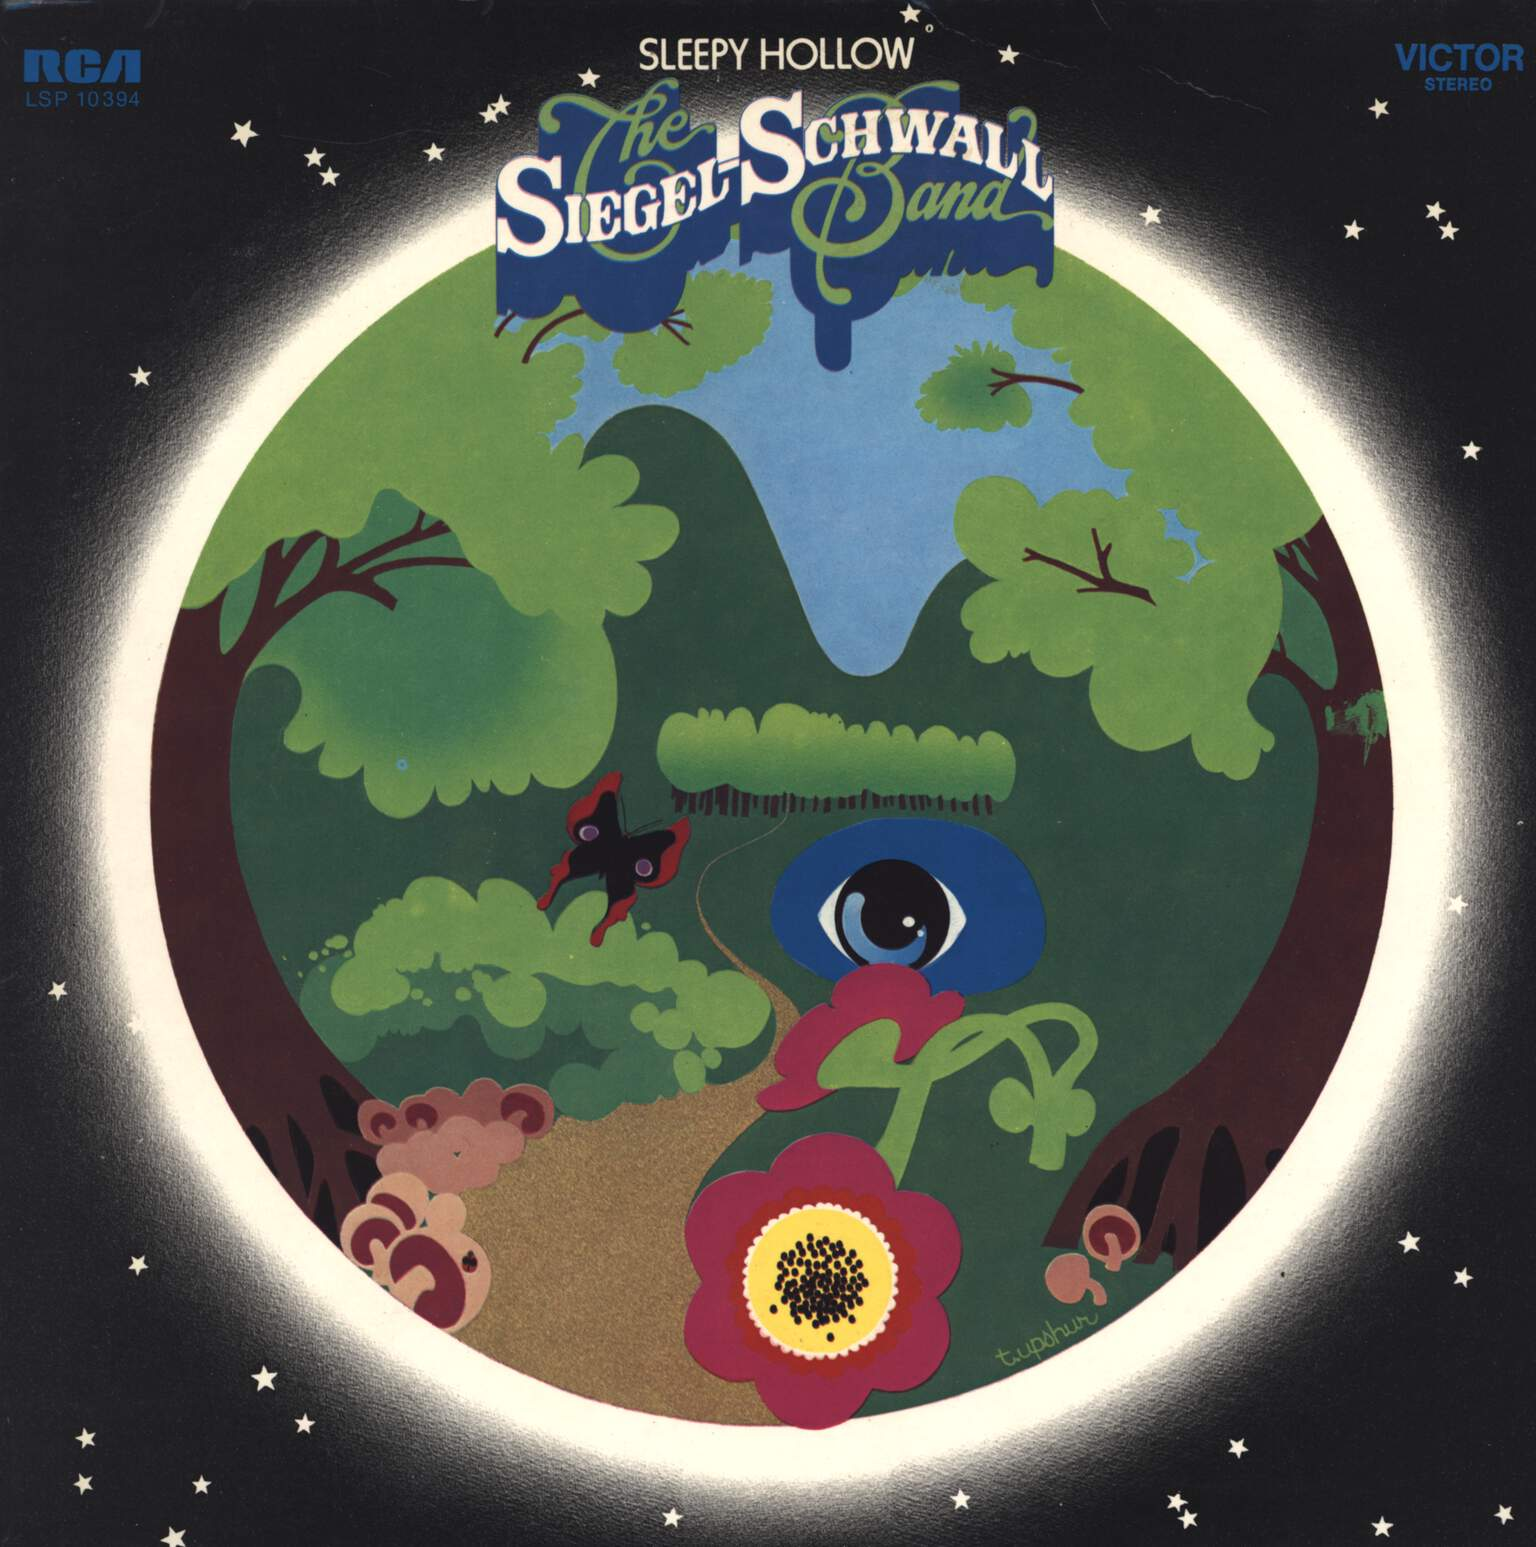 The Siegel-Schwall Band: Sleepy Hollow, LP (Vinyl)